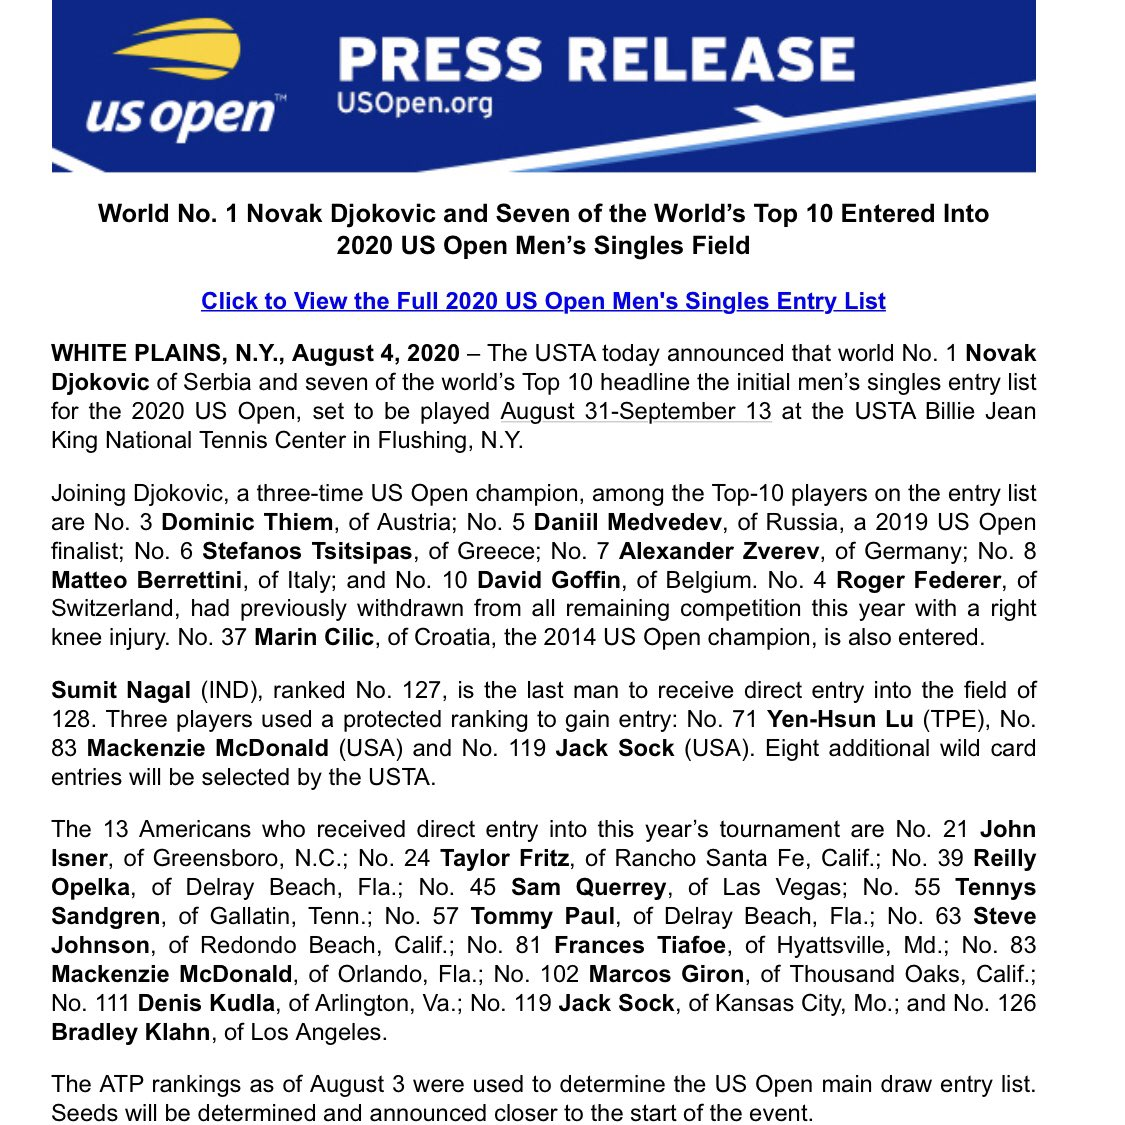 Rafael Nadal will not be defending his US Open title.   The USTA have not even mentioned him on their press release. Federer got a mention ... https://t.co/MSkVUqTOYD